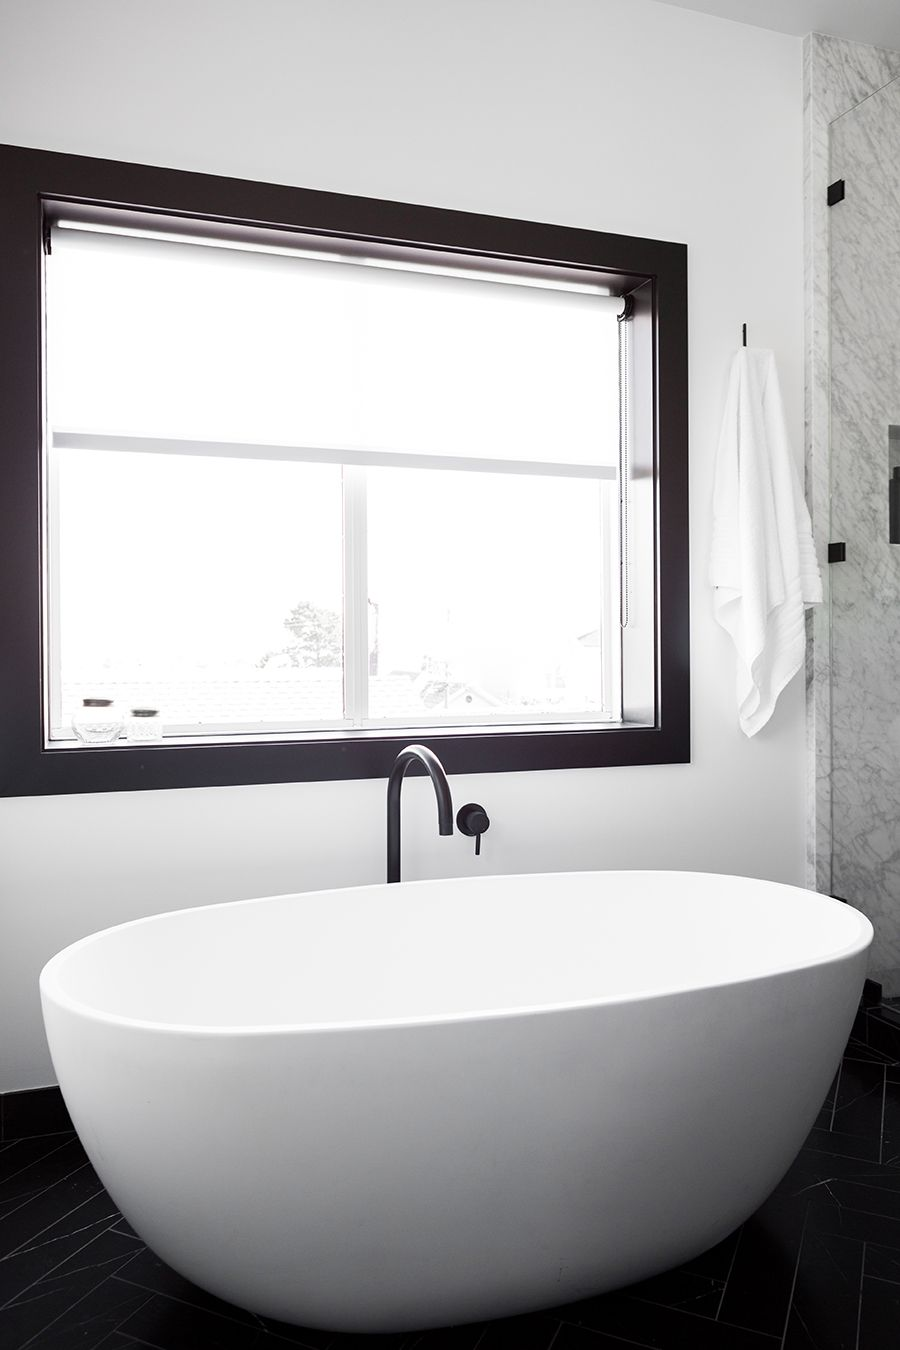 Bathroom Design San Francisco Inspiration San Francisco Apartment  Interior Design  Bathroom  Bathtub Review